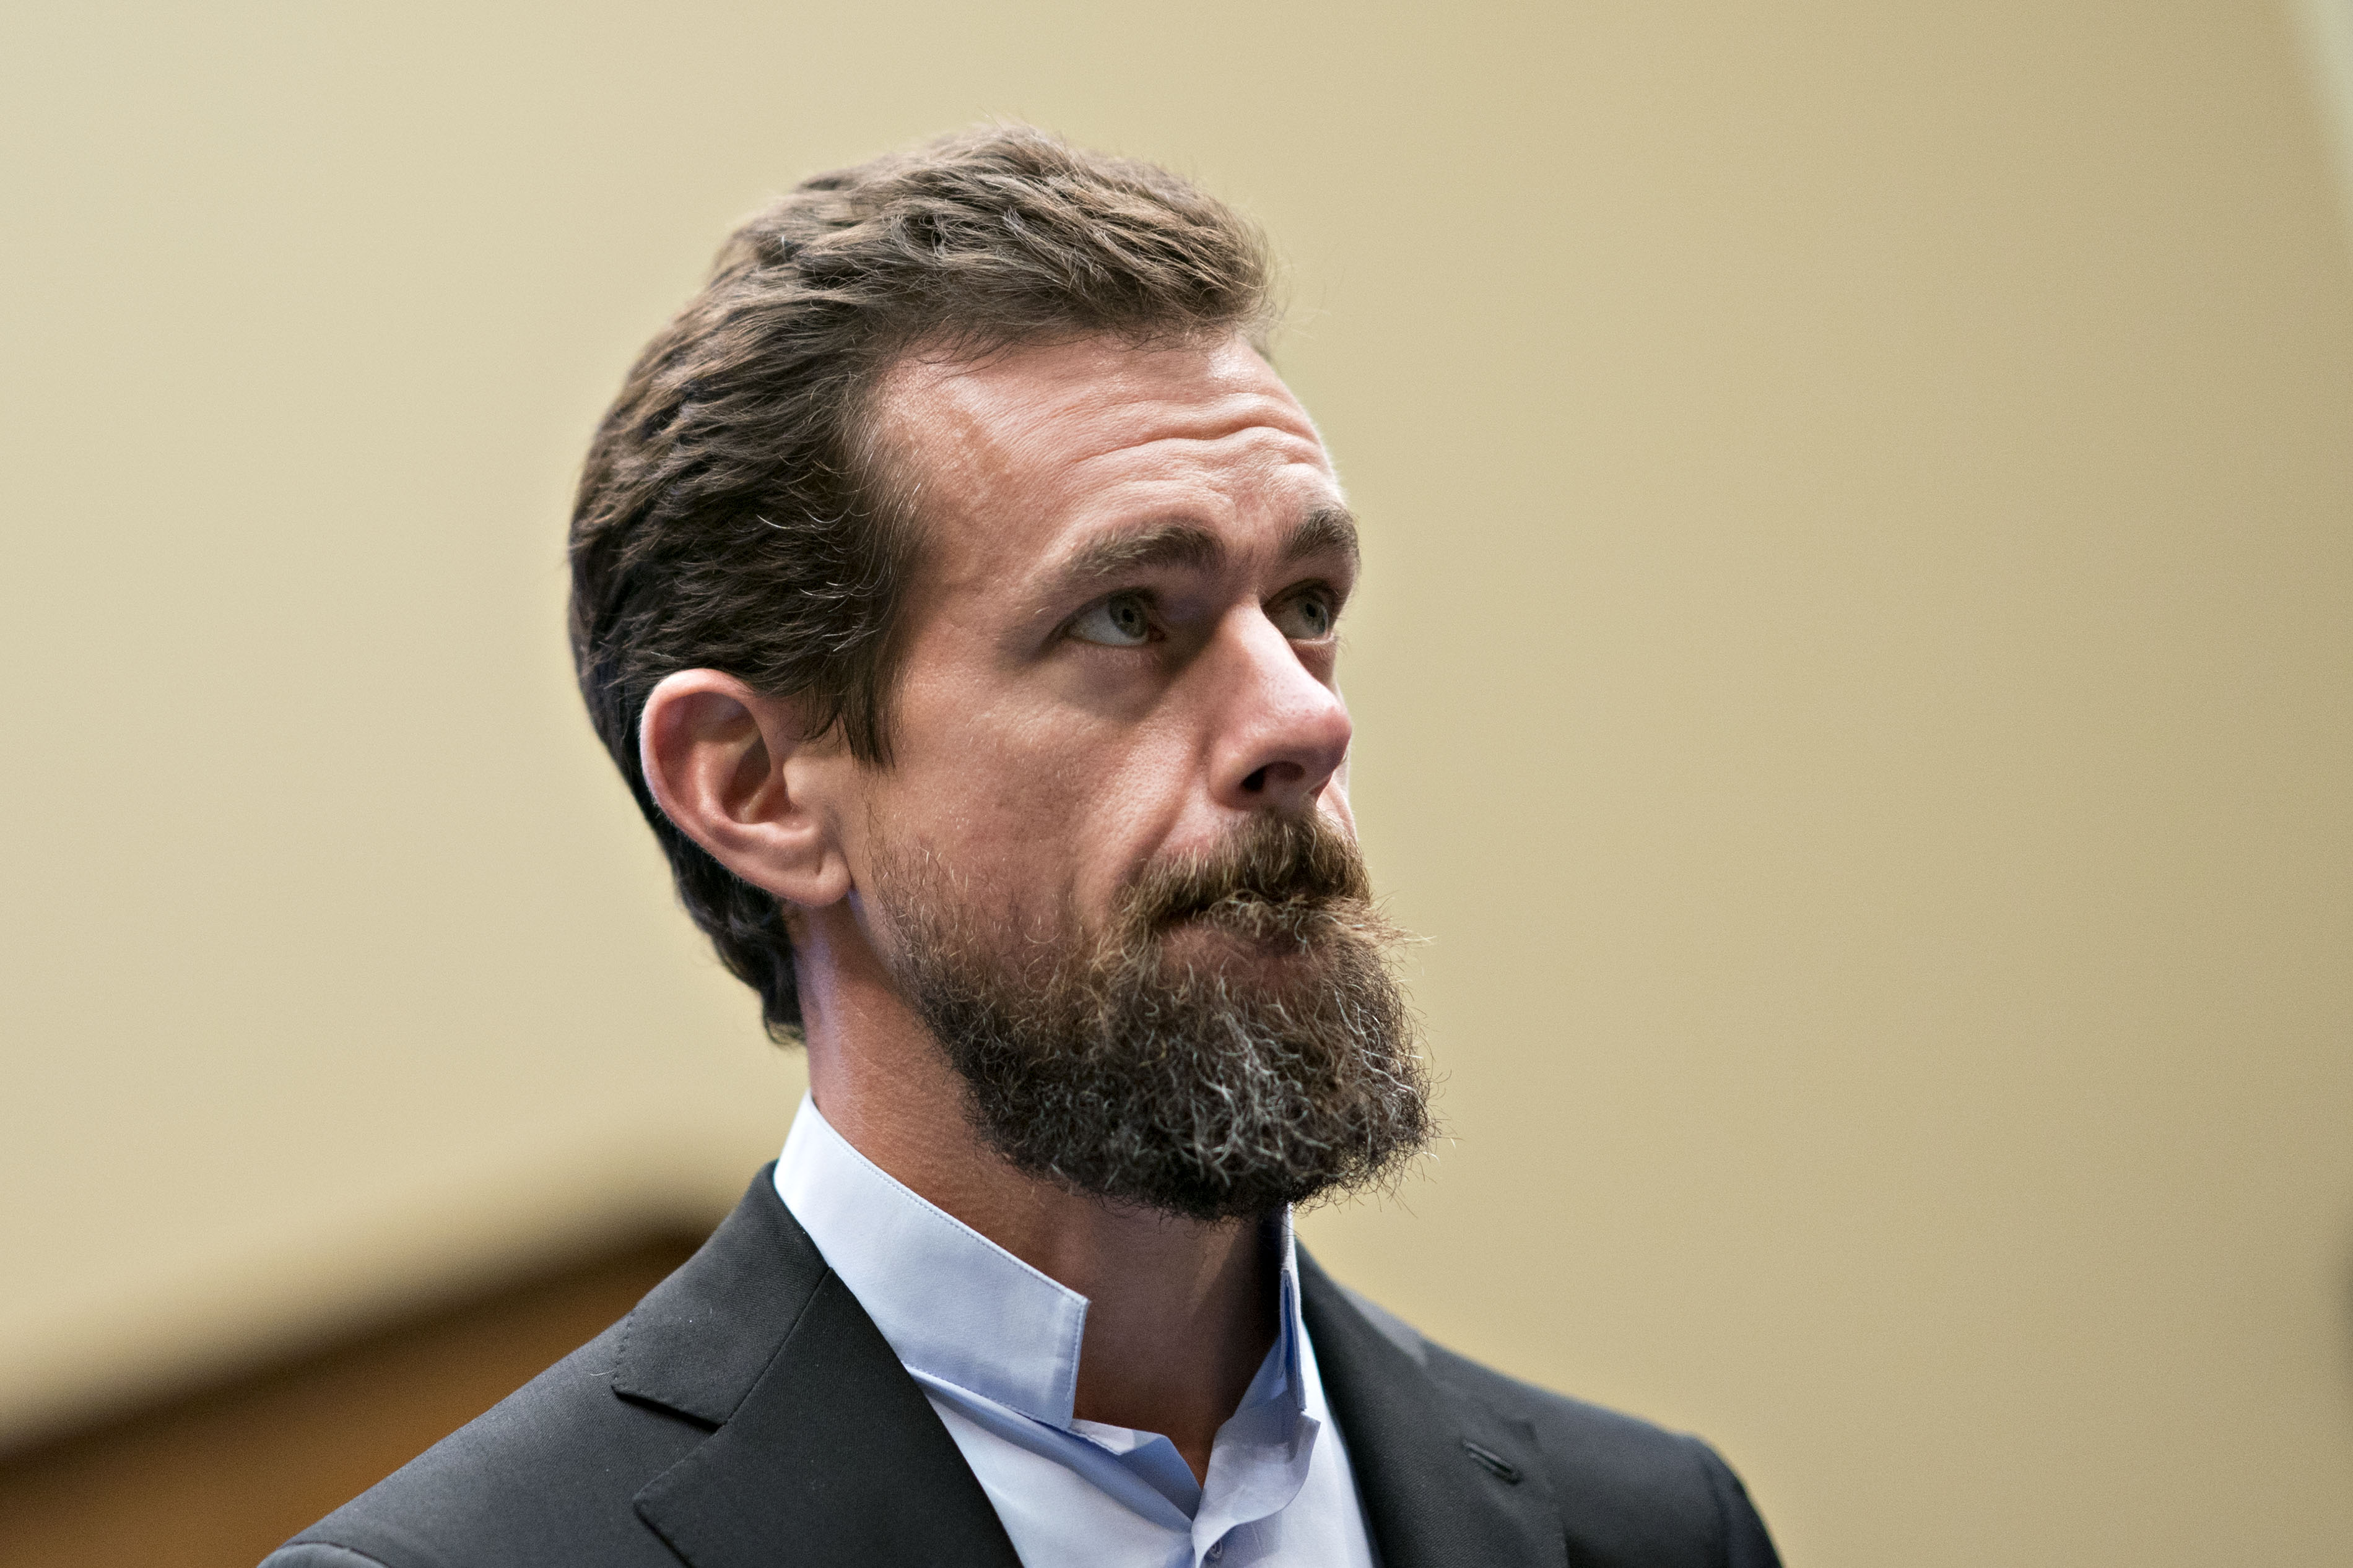 Jack Dorsey says it's time to rethink the fundamental dynamics of Twitter | TechCrunch